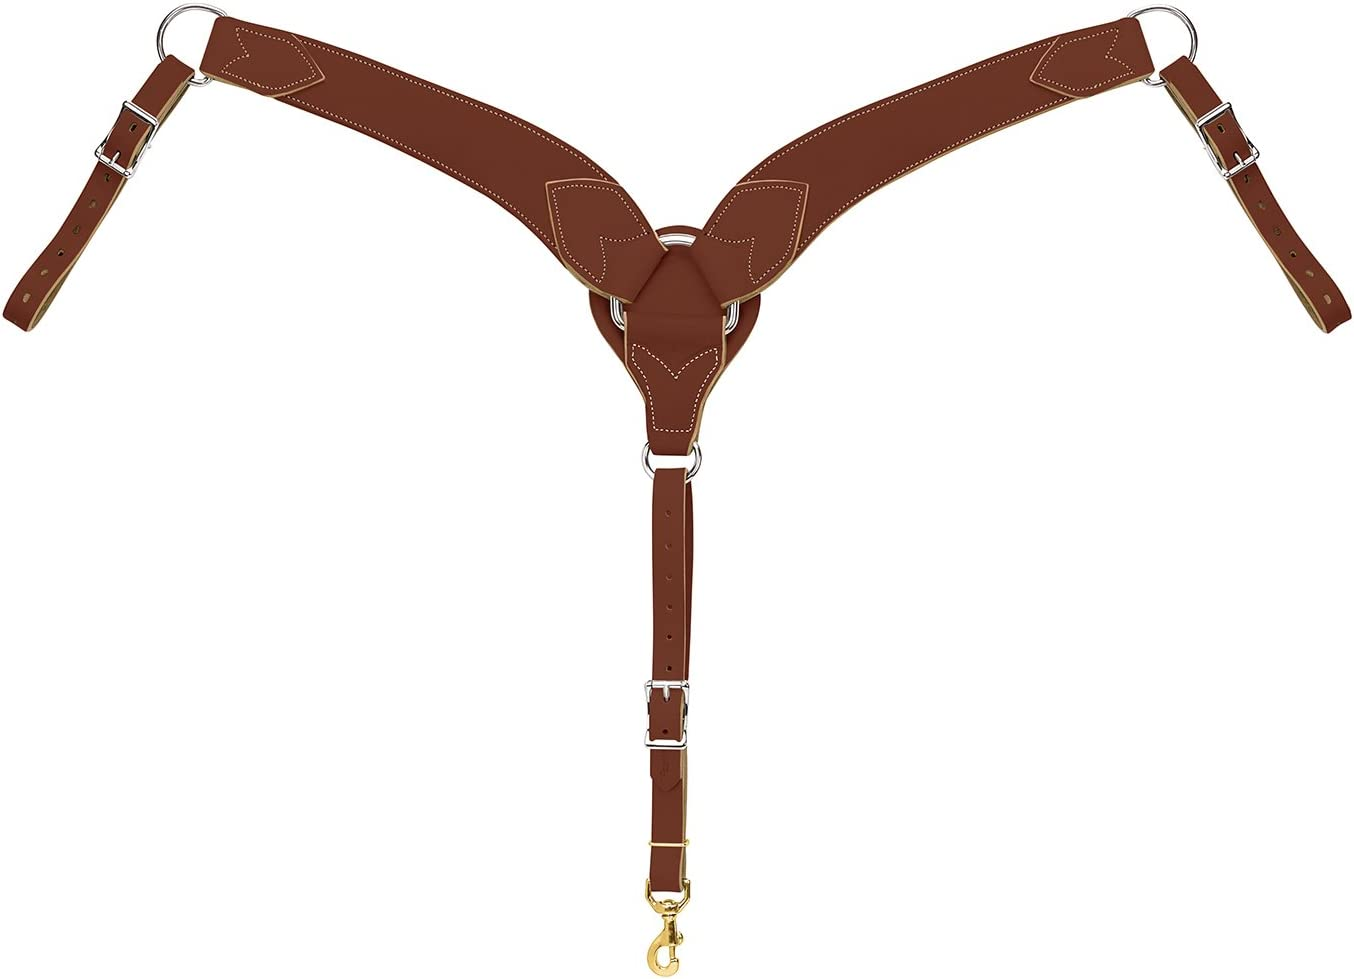 B003LVKZBE WEAVER Leather Horizon Roper Breast Collar 61tlI8JN2ML